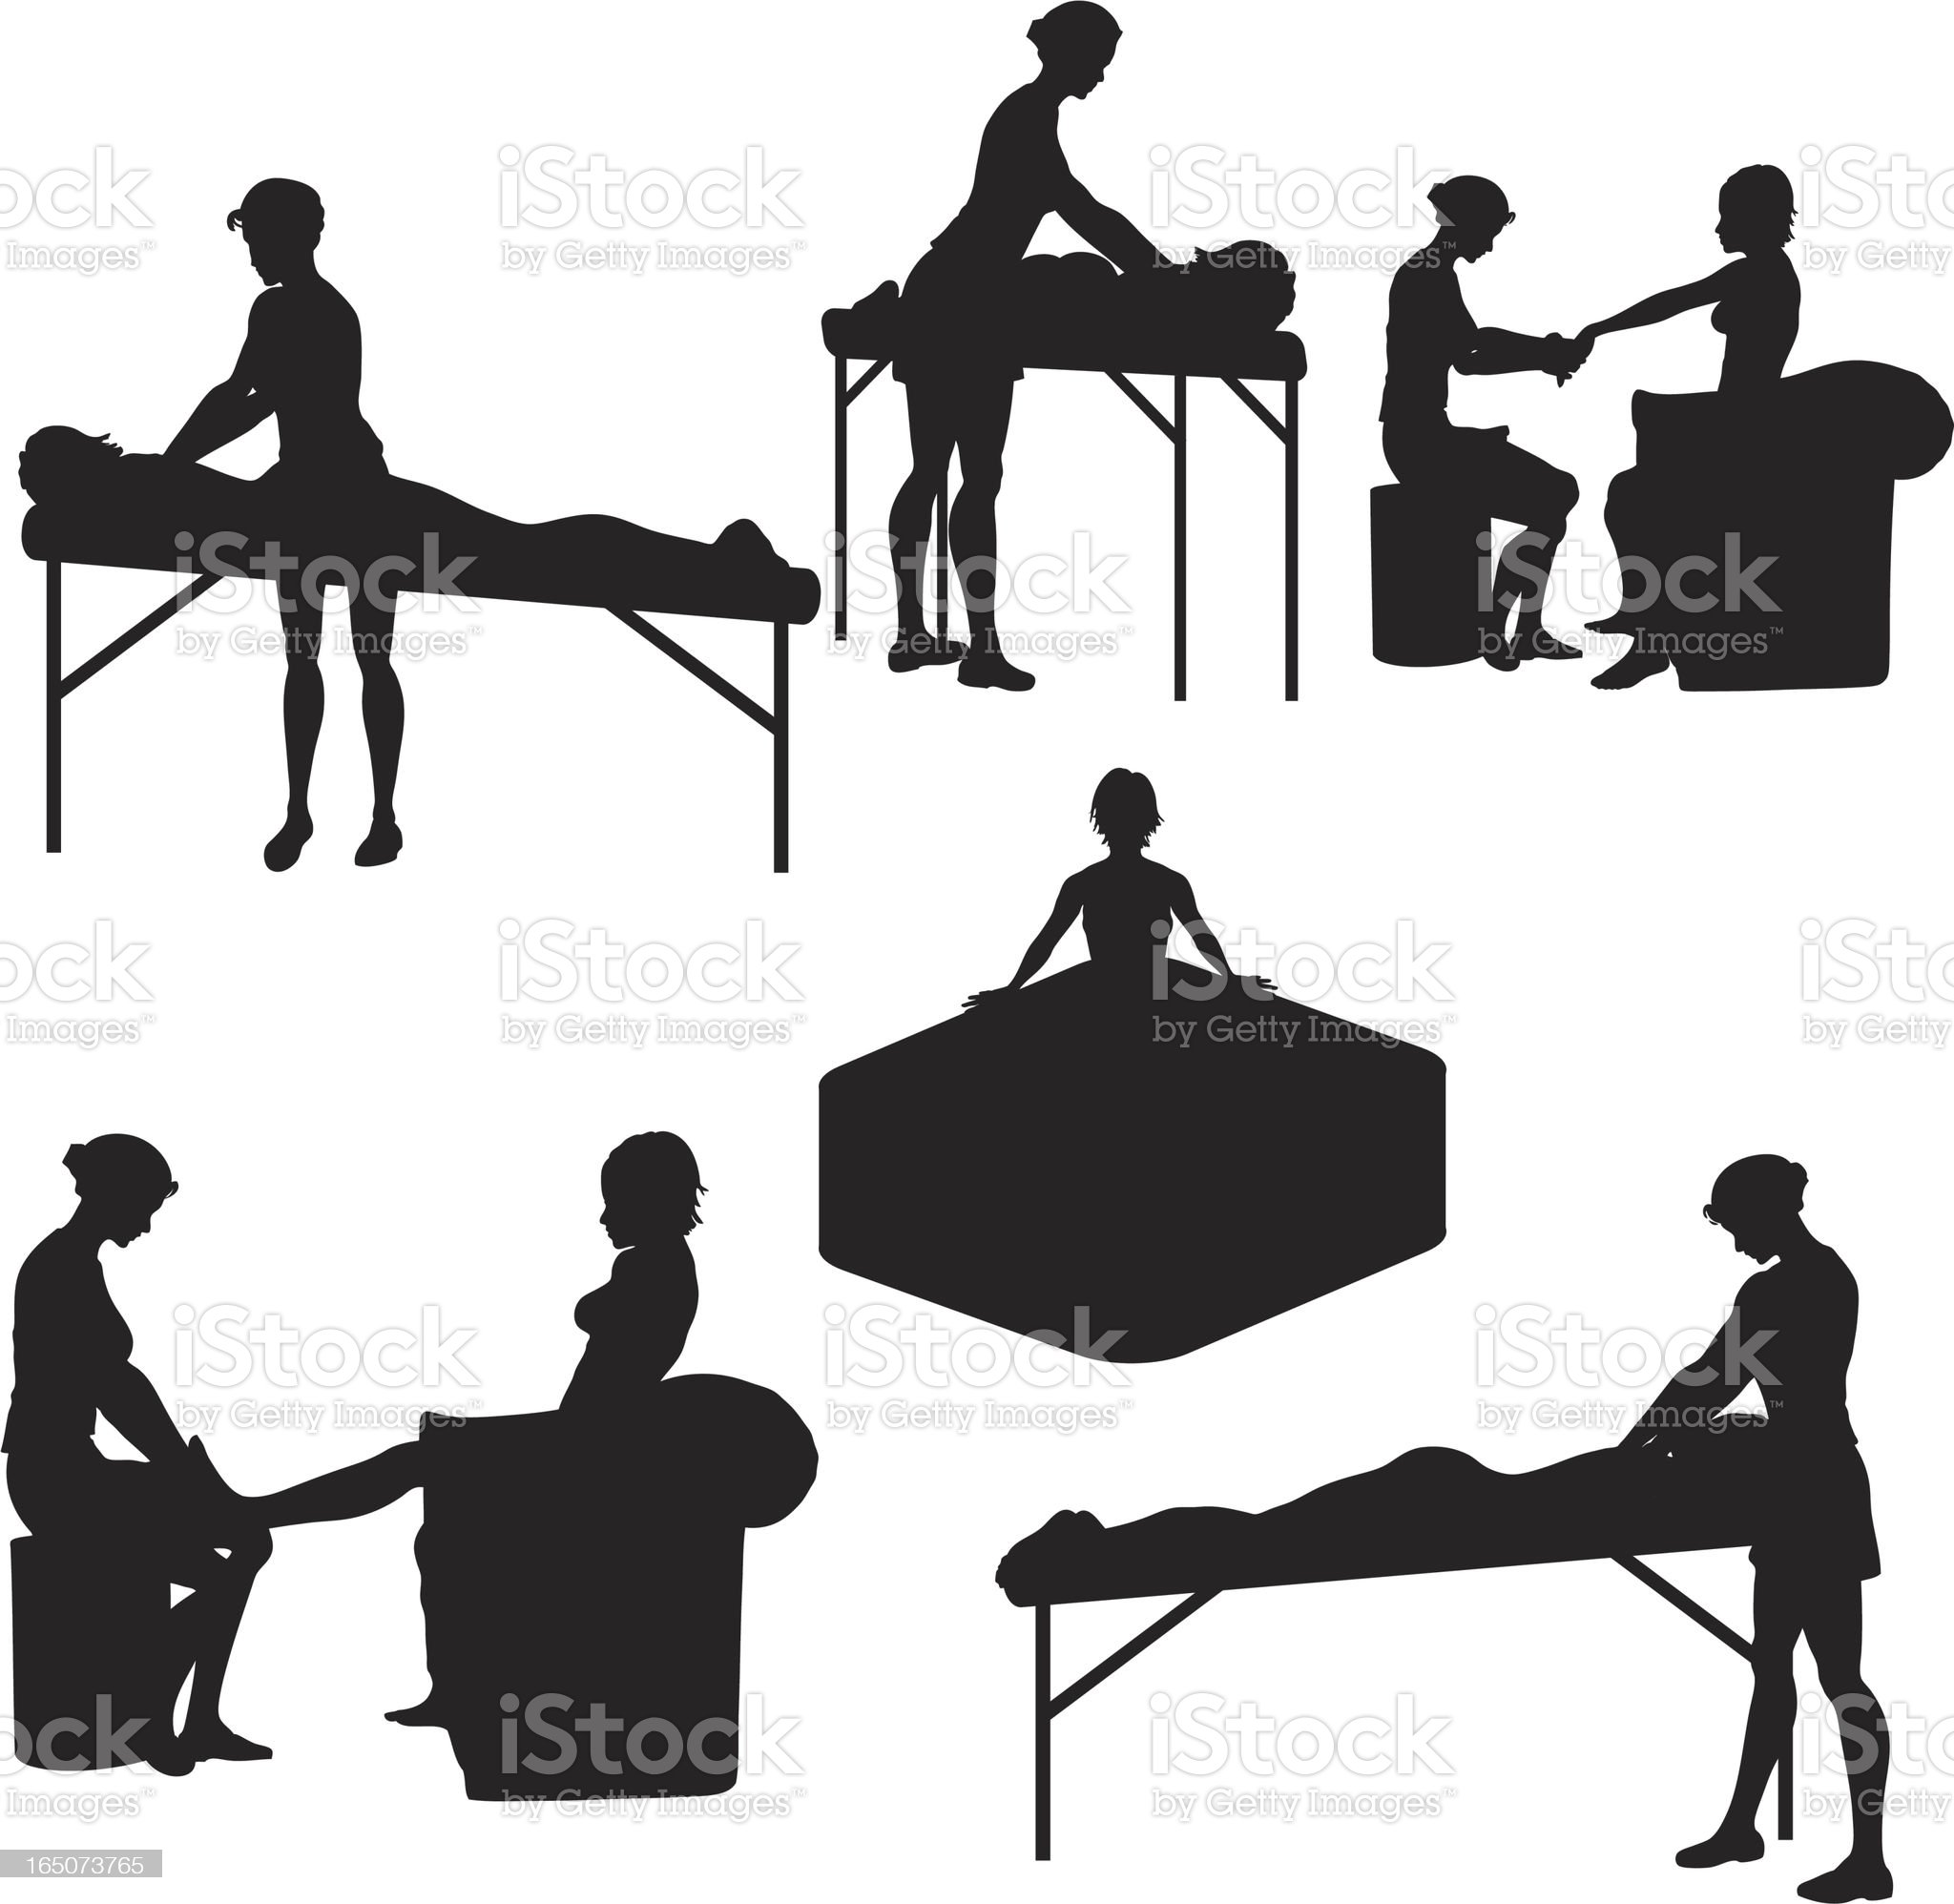 Spa Silhouette Collection royalty-free stock vector art